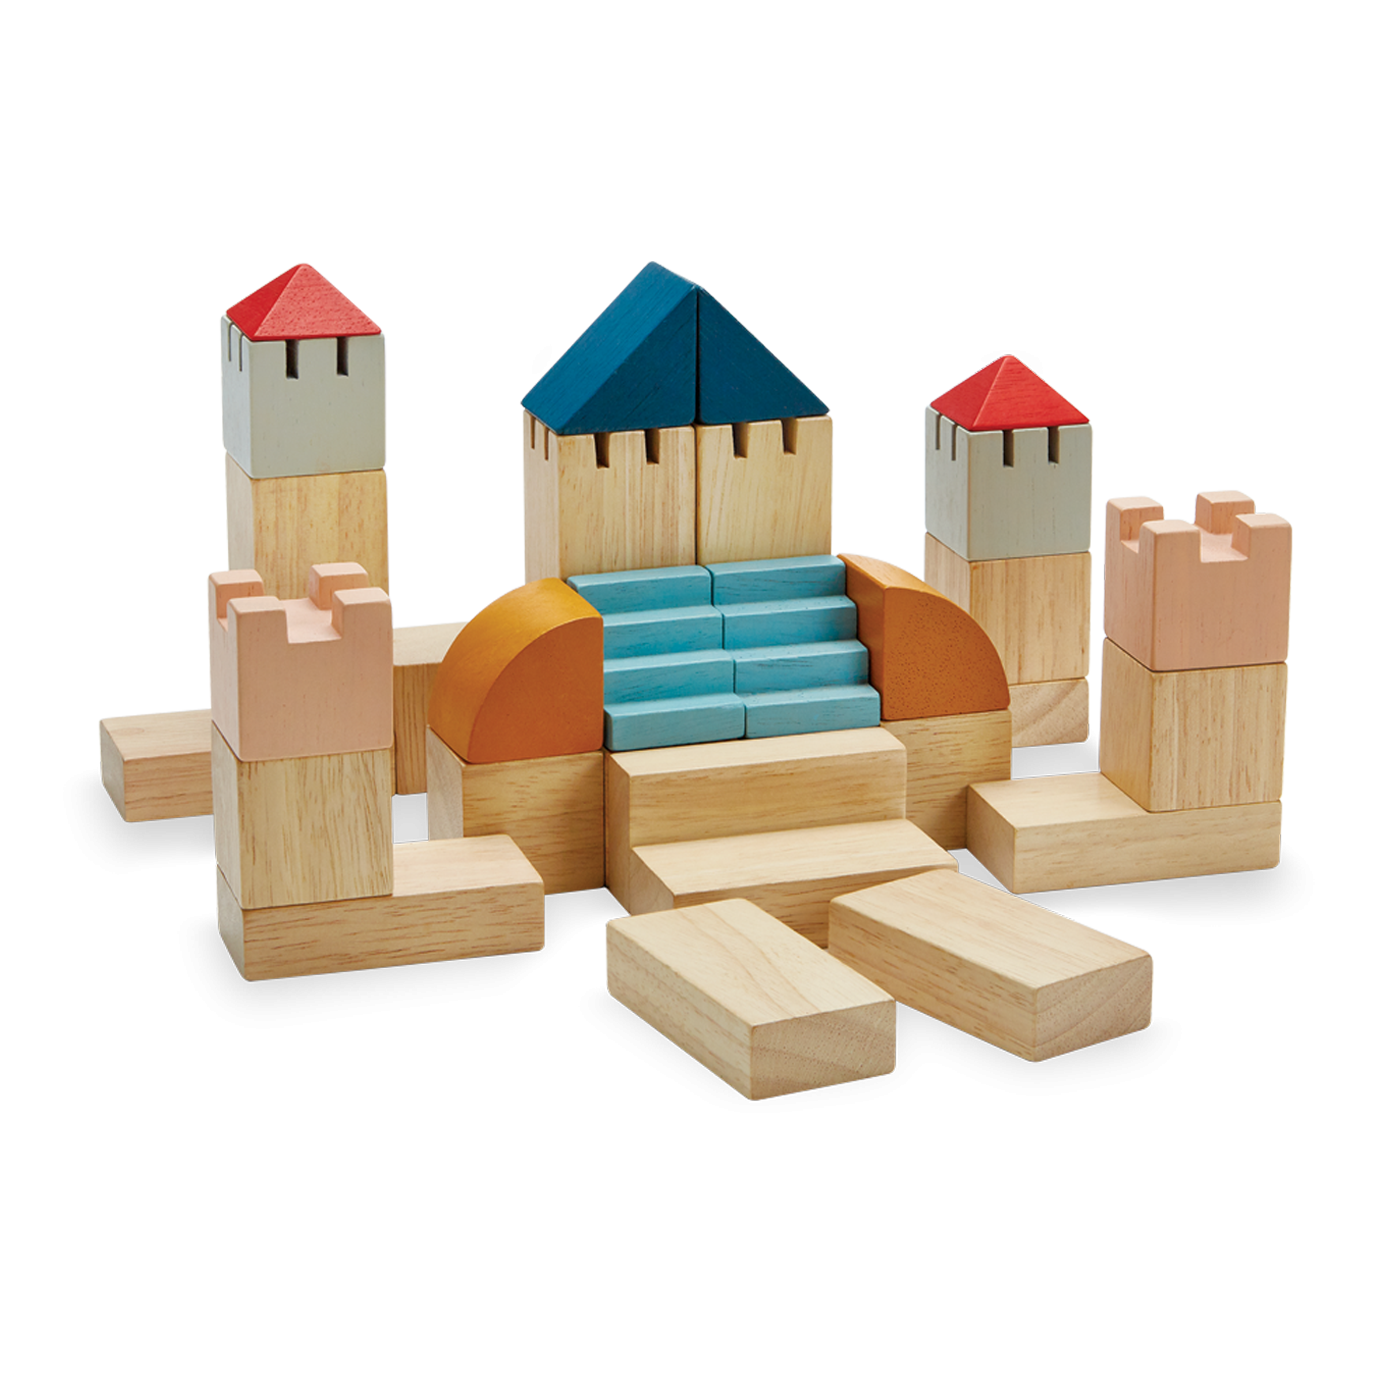 5542_PlanToys_Creative_Blocks_-_Orchard_Blocks_and_Construction_18m_Language_and_Communications_Imagination_Coordination_Concentration_Creative_Mathematical_Wooden_toys_Education_toys_Safety_Toys_Non-toxic_0.png